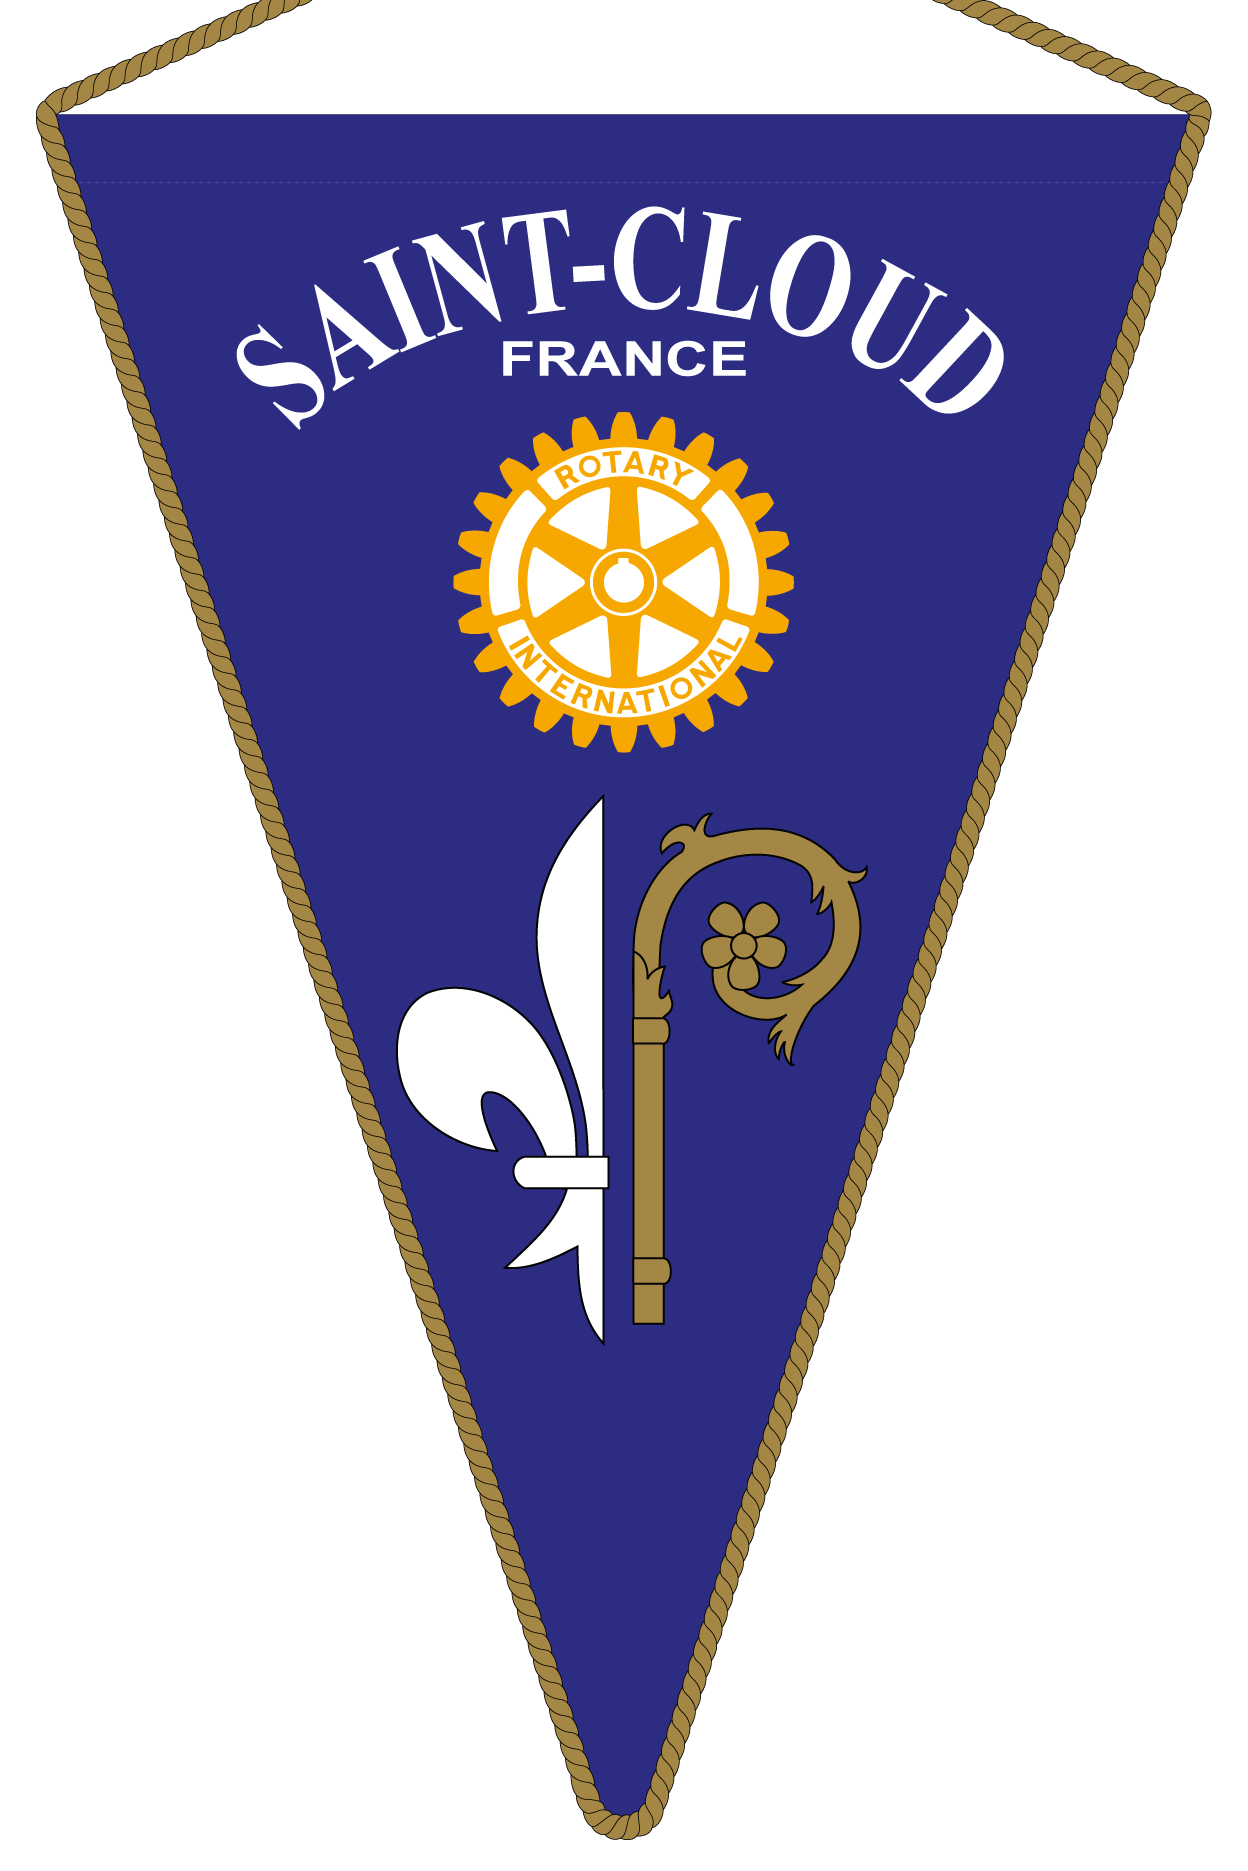 FANION ROTARY CLUB SAINT CLOUD